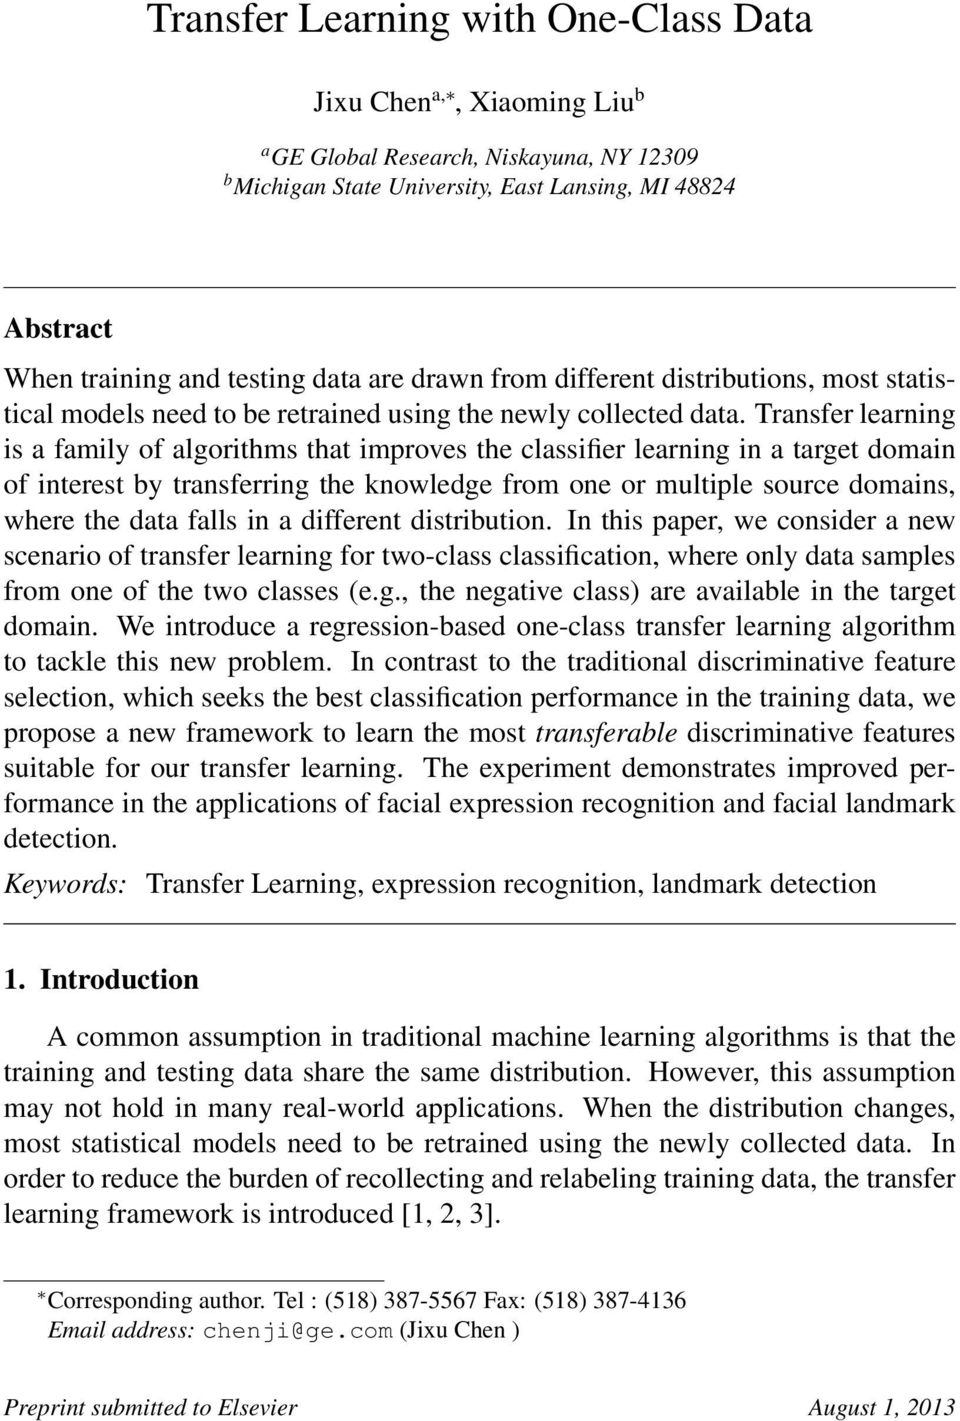 Transfer learning is a family of algorithms that improves the classifier learning in a target domain of interest by transferring the knowledge from one or multiple source domains, where the data